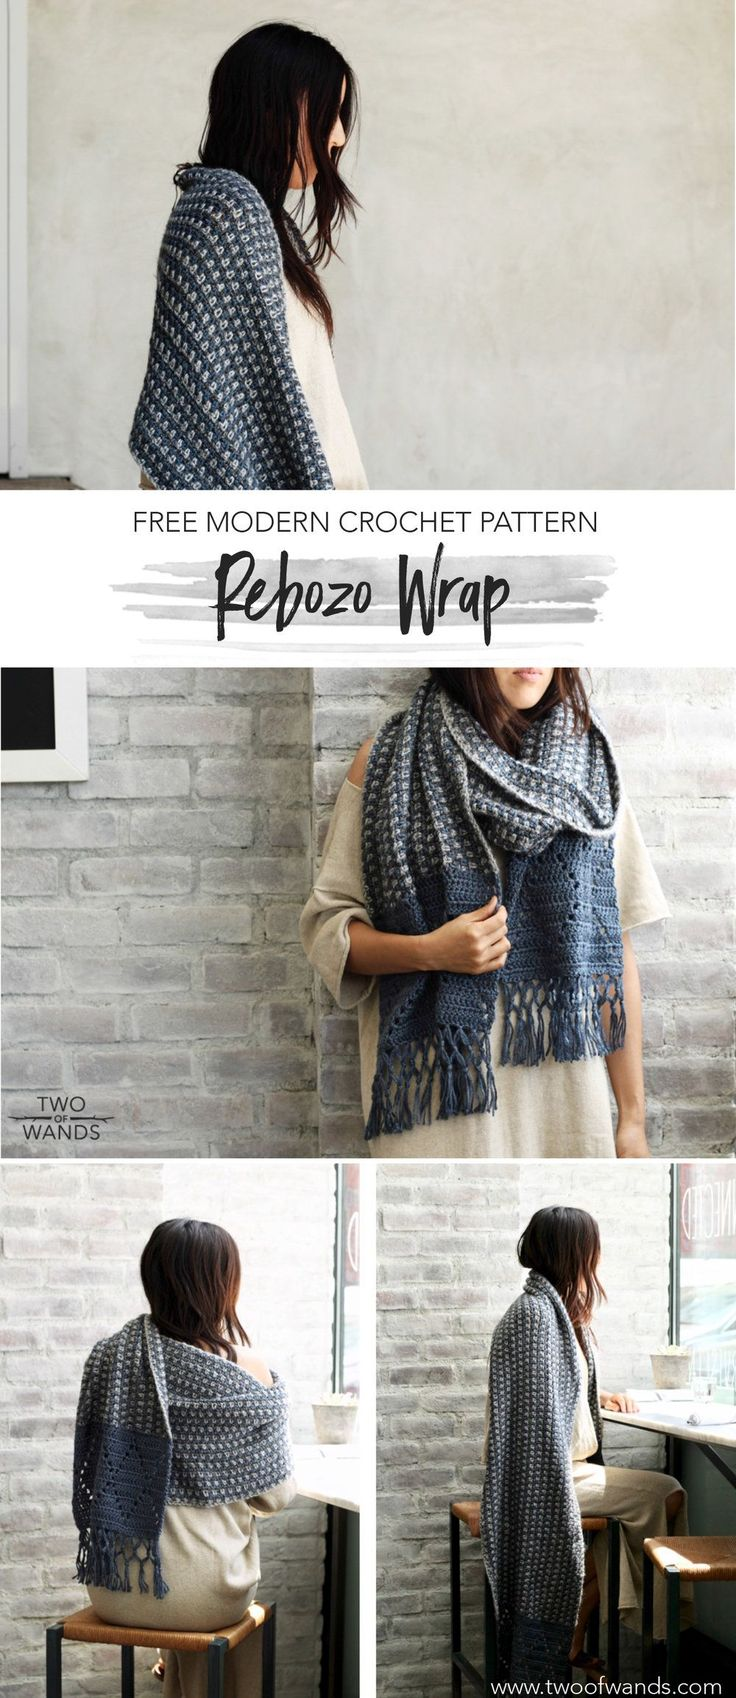 Rebozo Wrap - free crochet pattern by Alexandra Tavel at Two of Wands.